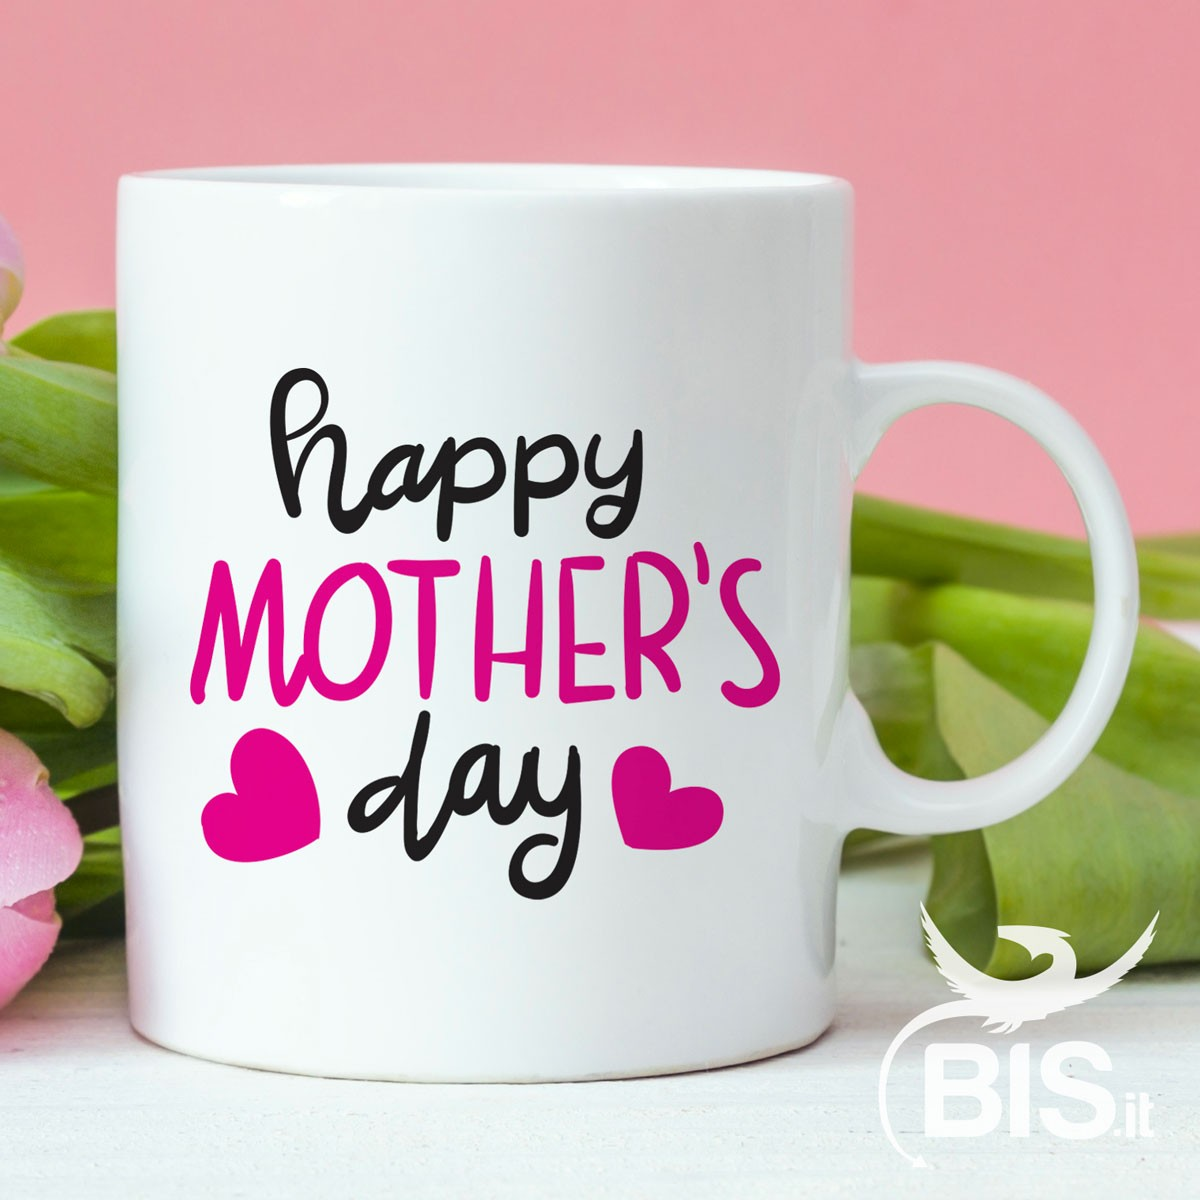 Tazza Happy mother's Day